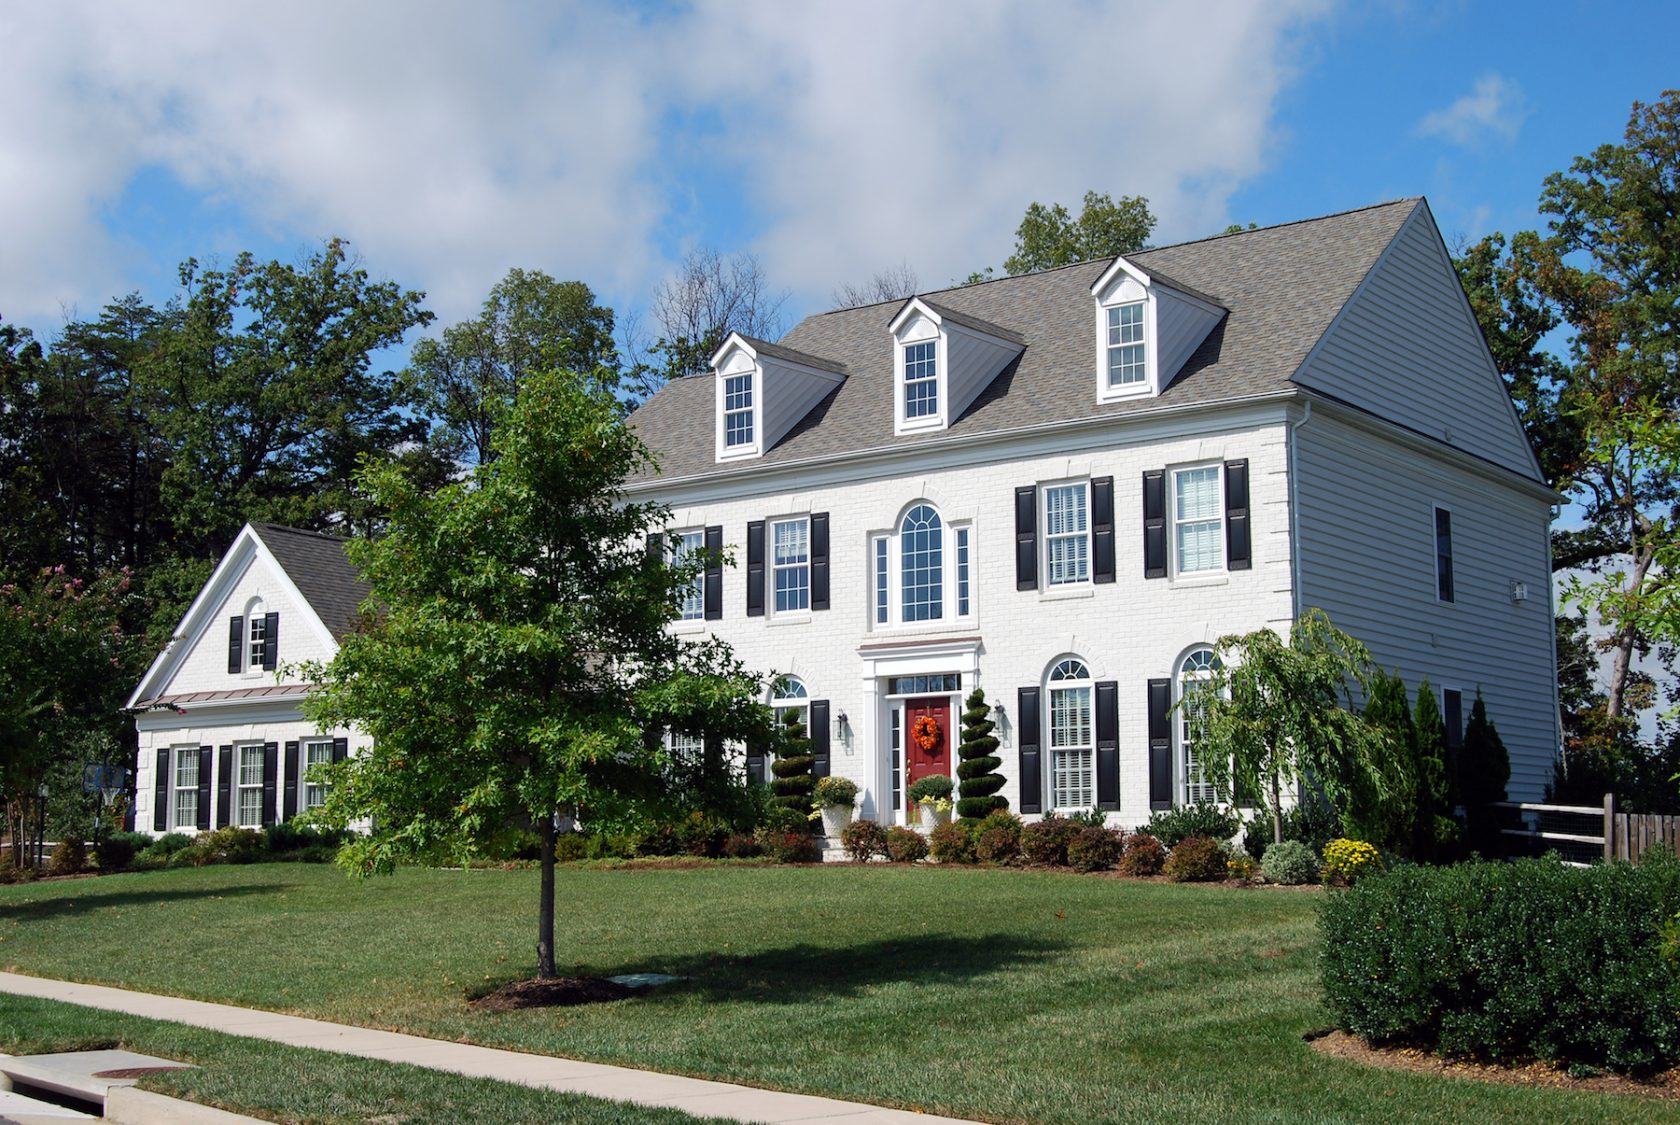 house-hunting-tips-to-help-you-find-the-right-home-in-burlington-team-logue-real-estate